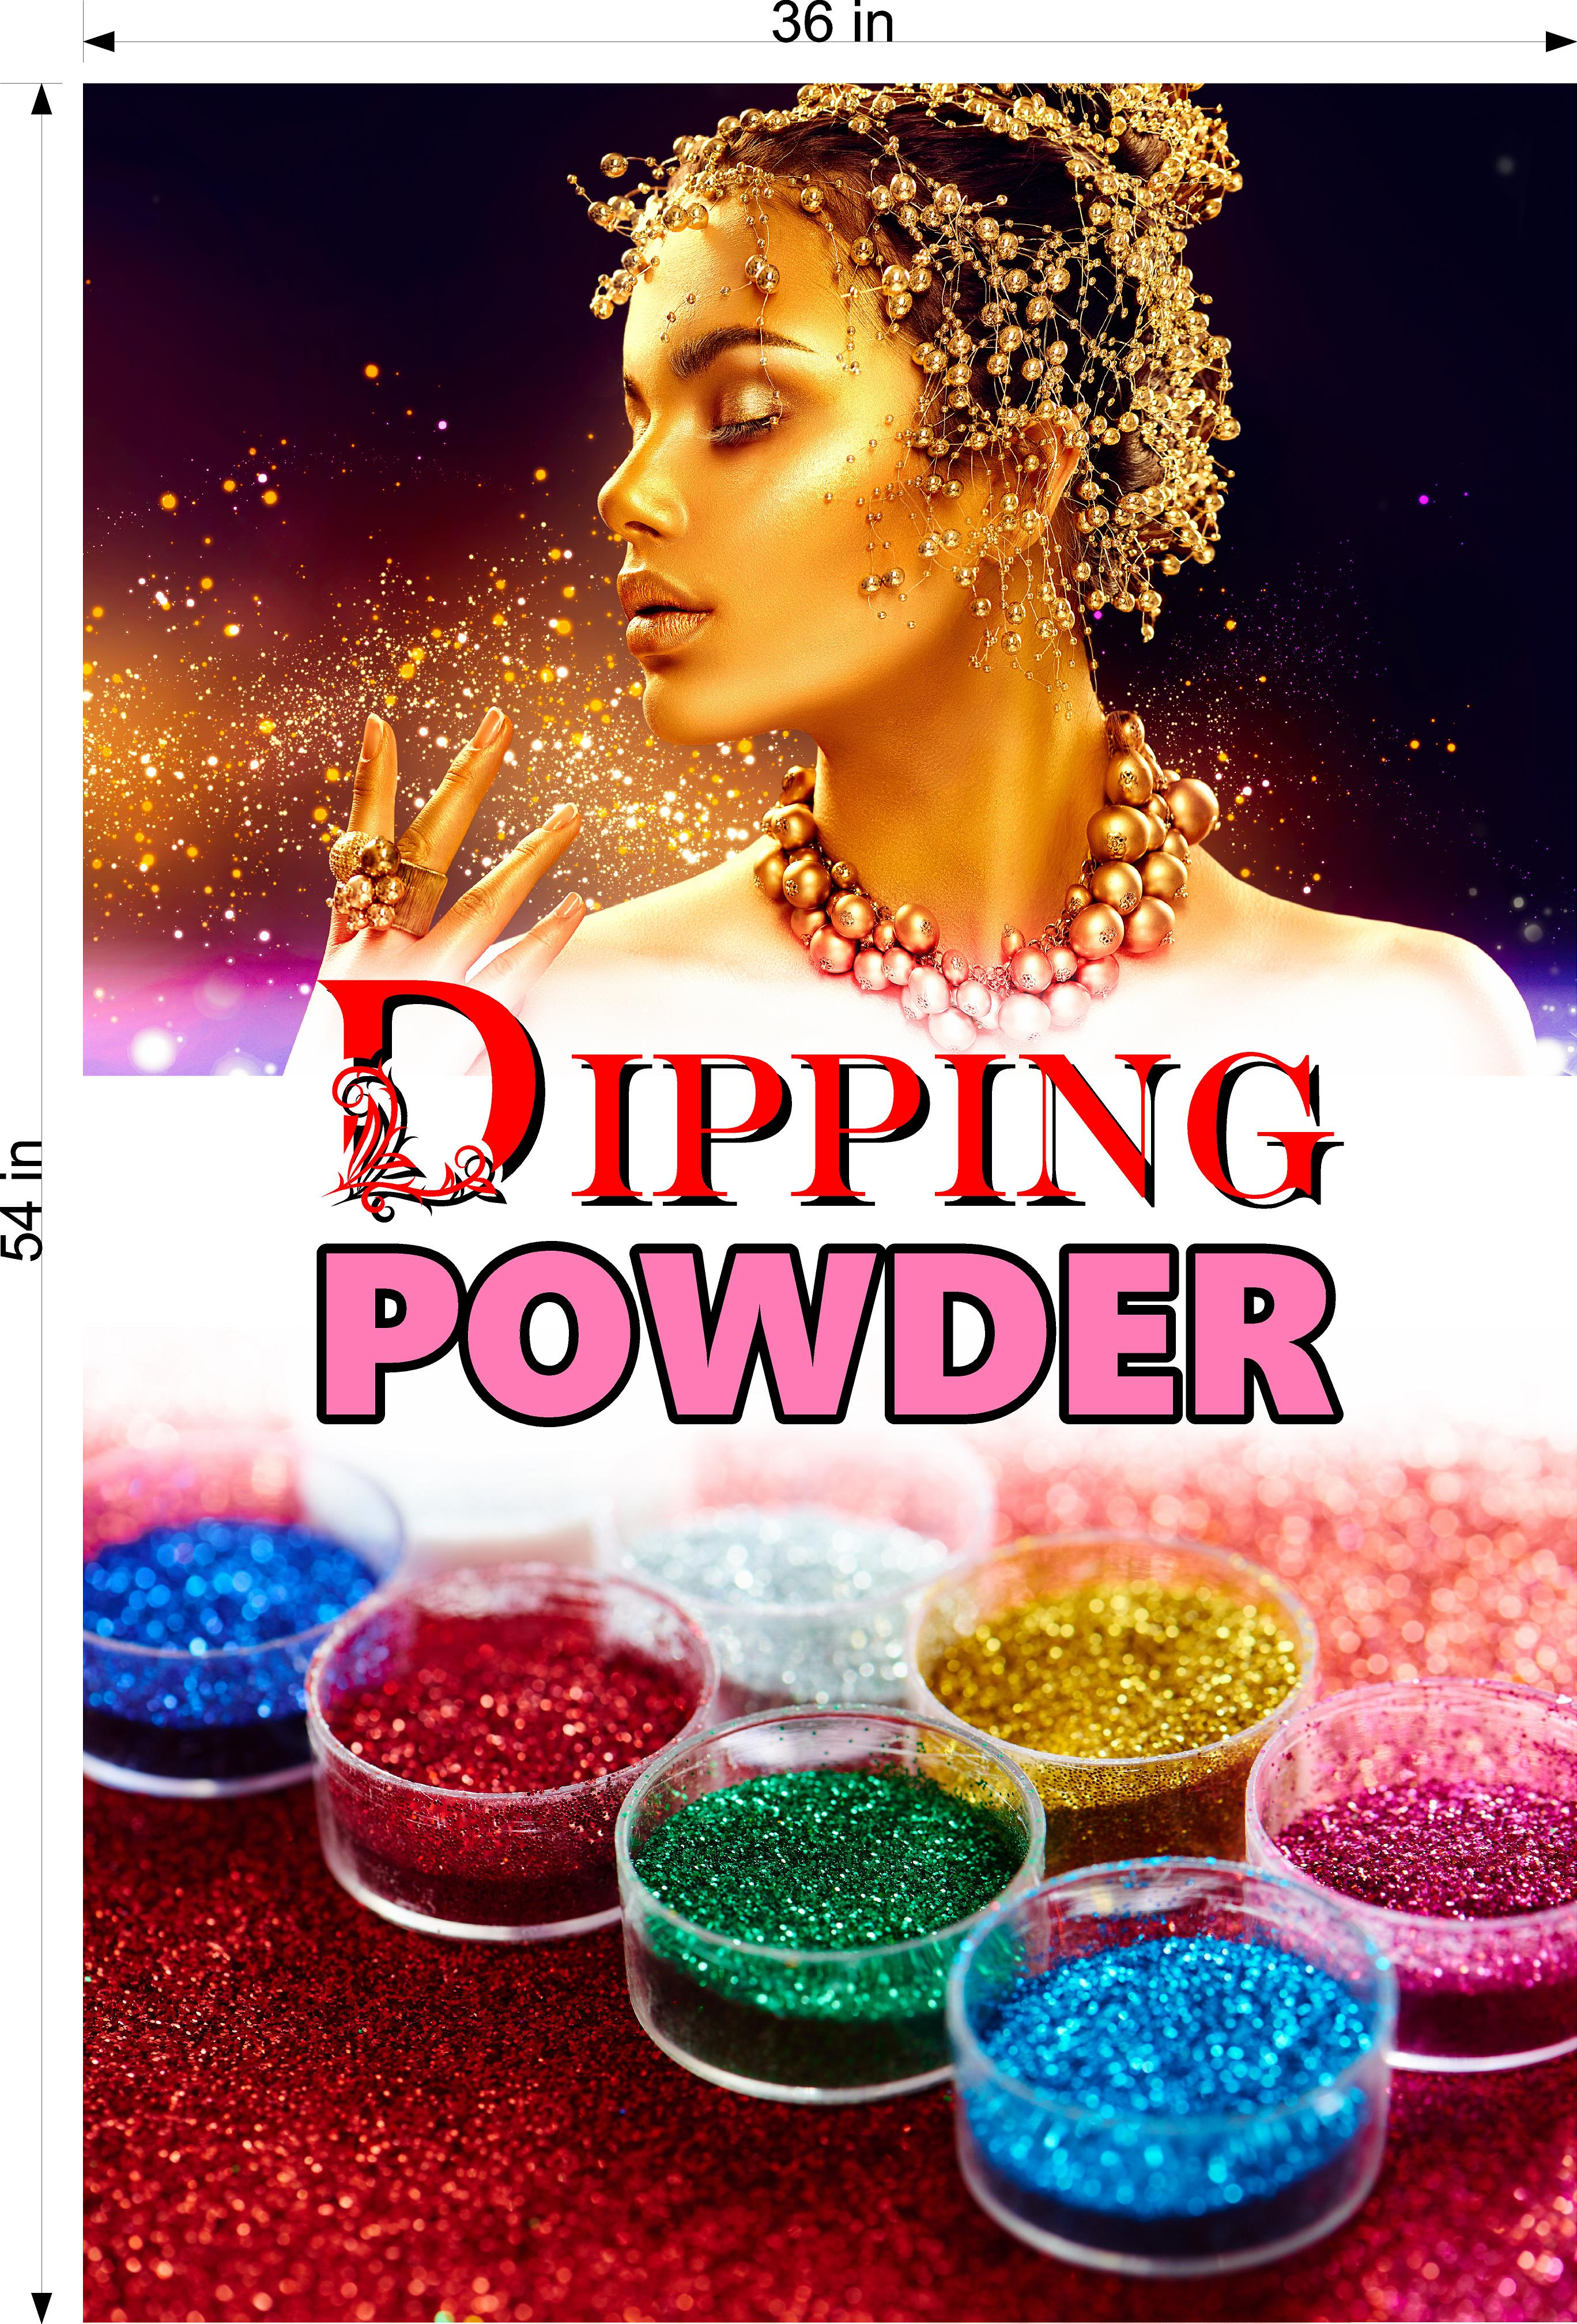 Dipping Powder 04 Photo-Realistic Paper Poster Premium Matte Interior Inside Sign Non-Laminated Nail Salon Vertical